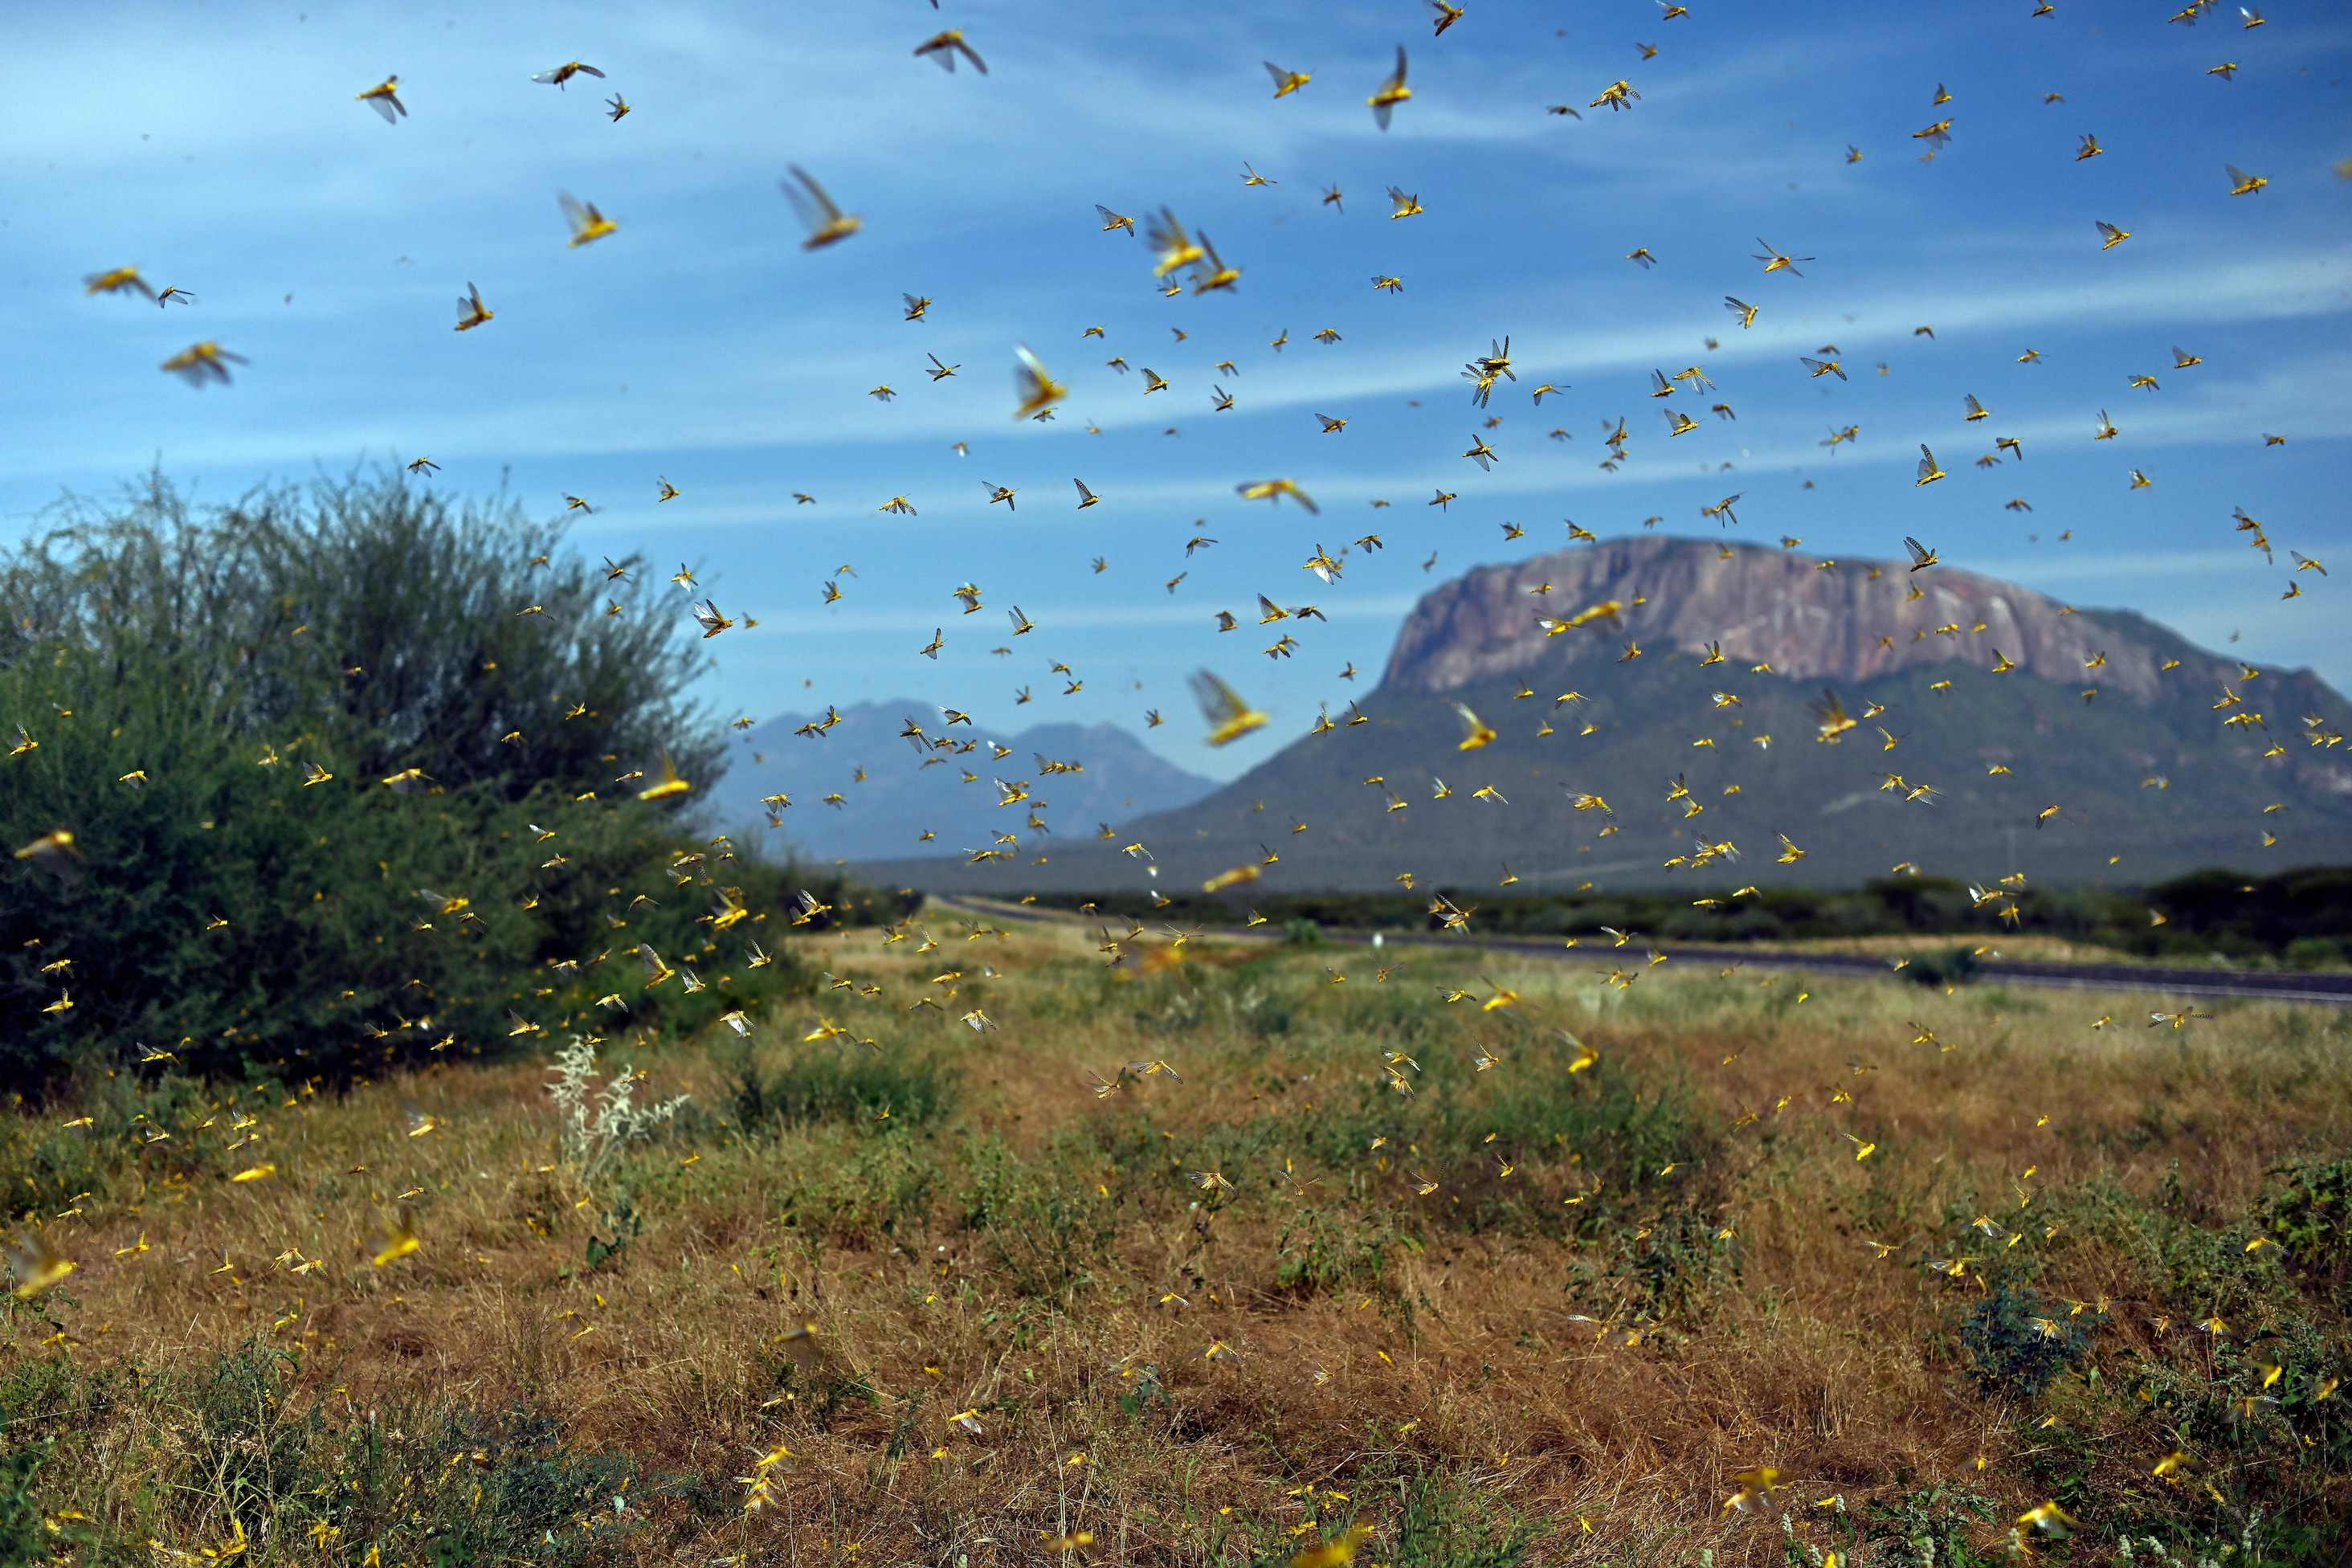 Image of locusts swarming in the Samburu area of Kenya